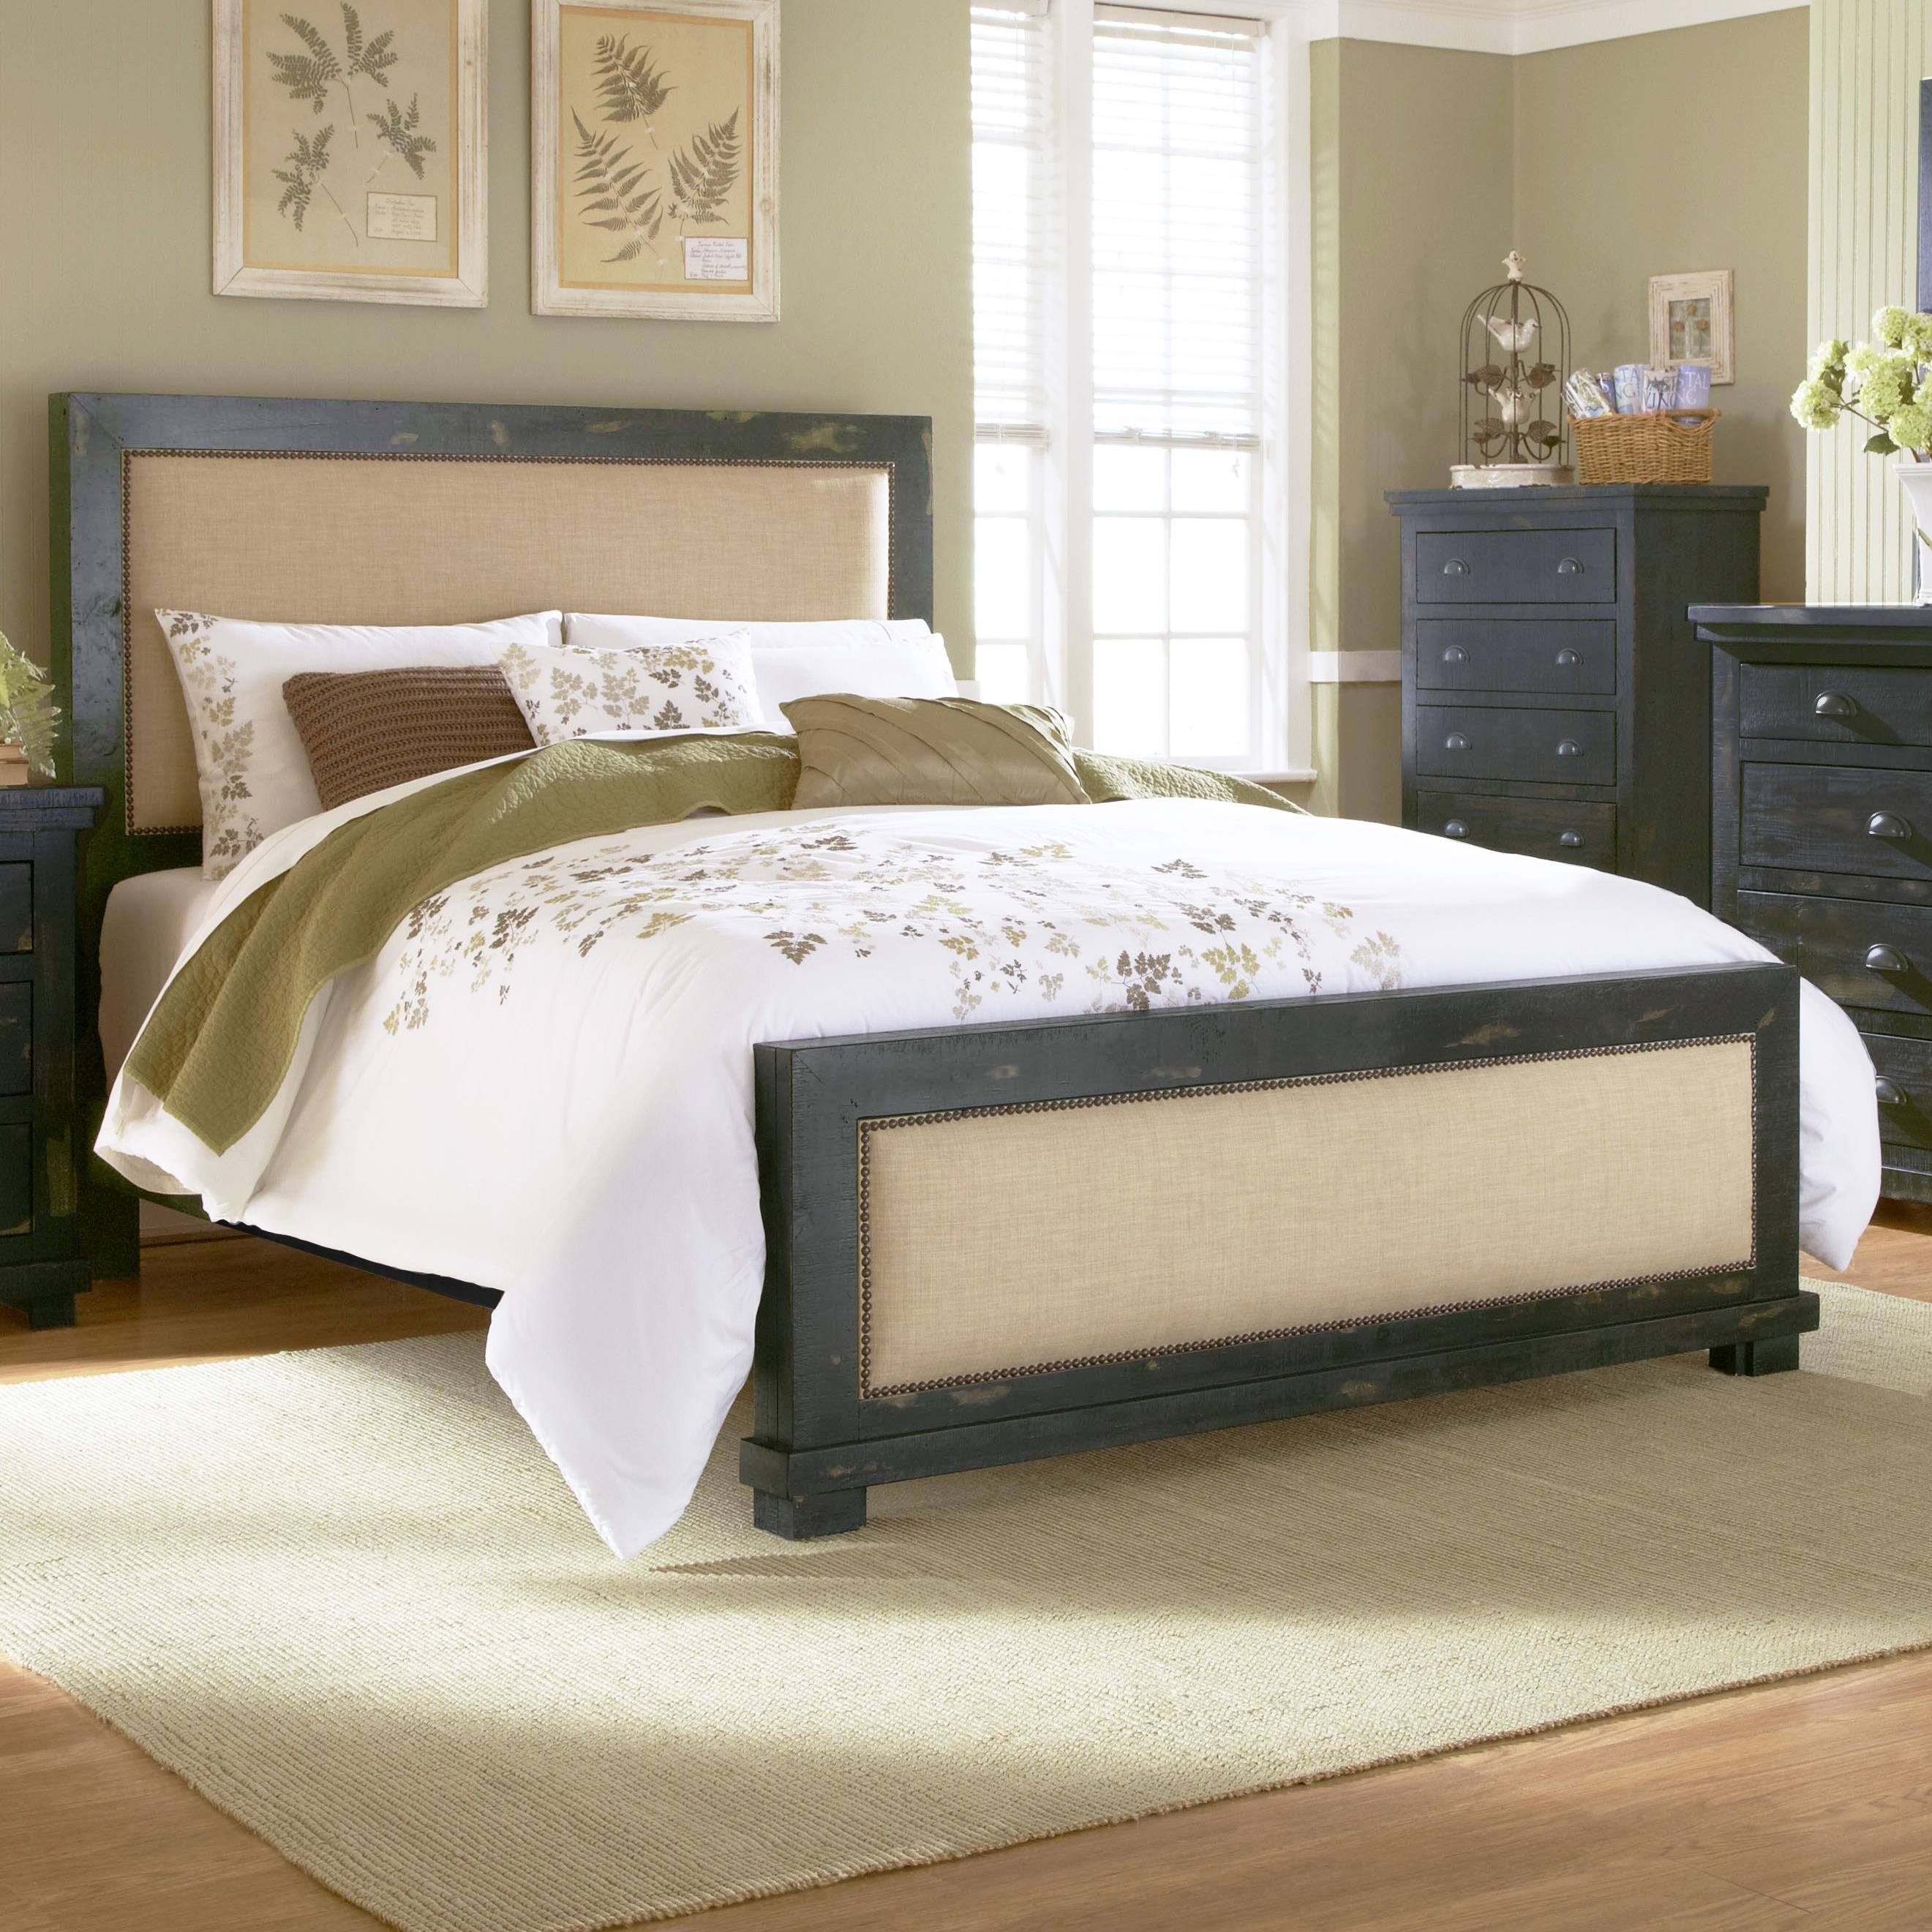 Progressive Furniture Willow Queen Upholstered Bed With Distressed Pine Frame Hudson 39 S